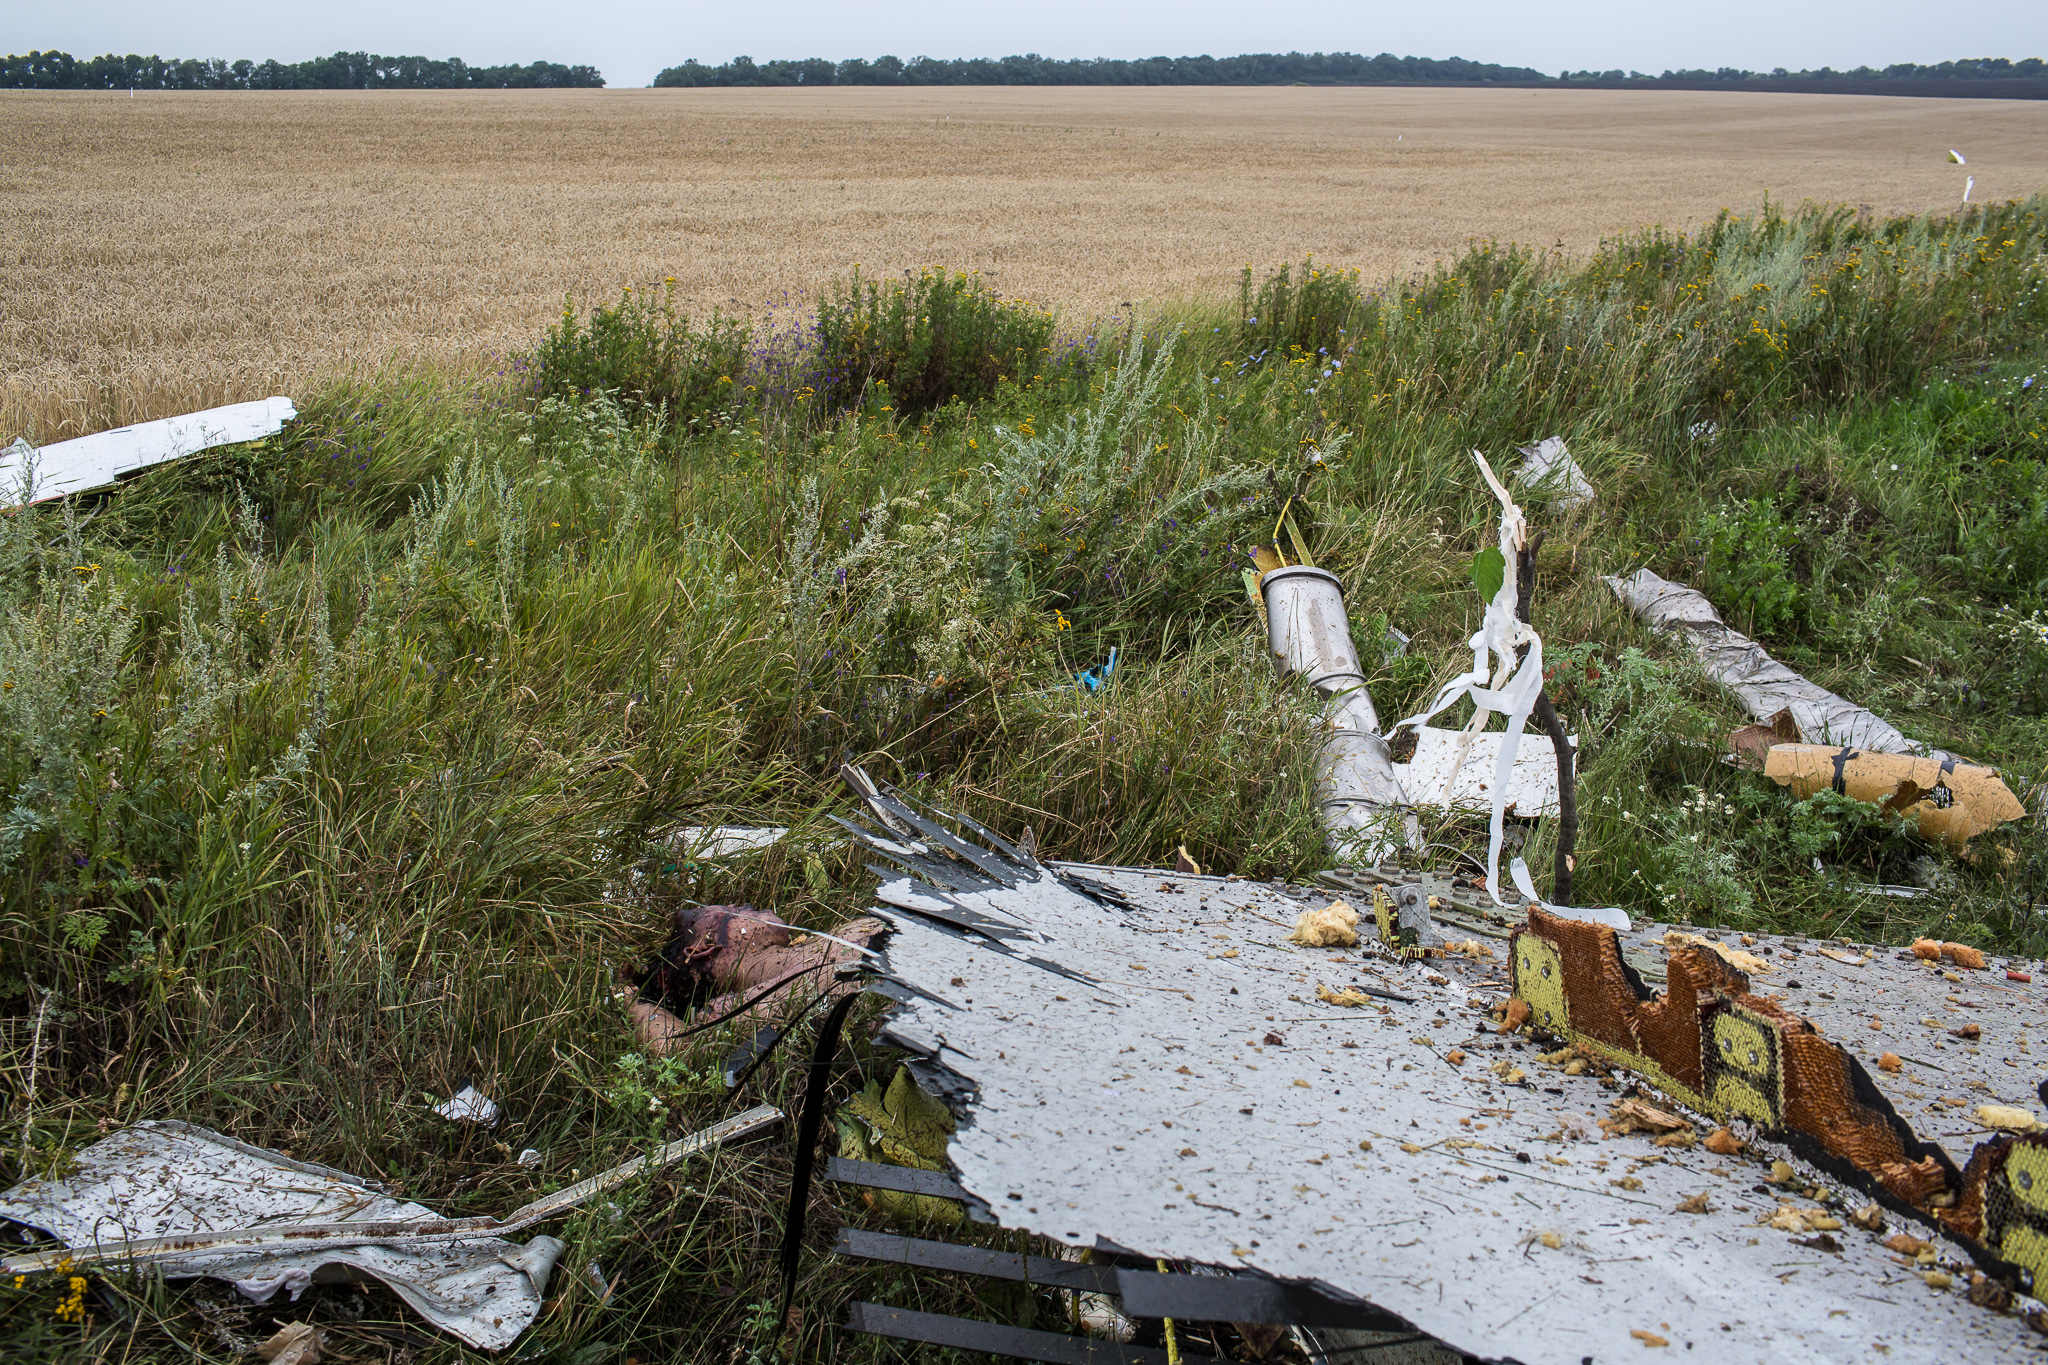 The body of a victim of the crash of Malaysia Airlines flight MH17 lie in a field on July 18, 2014 in Grabovo, Ukraine. Malaysia Airlines flight MH17 travelling from Amsterdam to Kuala Lumpur has crashed on the Ukraine/Russia border near the town of Shaktersk. The Boeing 777 was carrying 298 people.